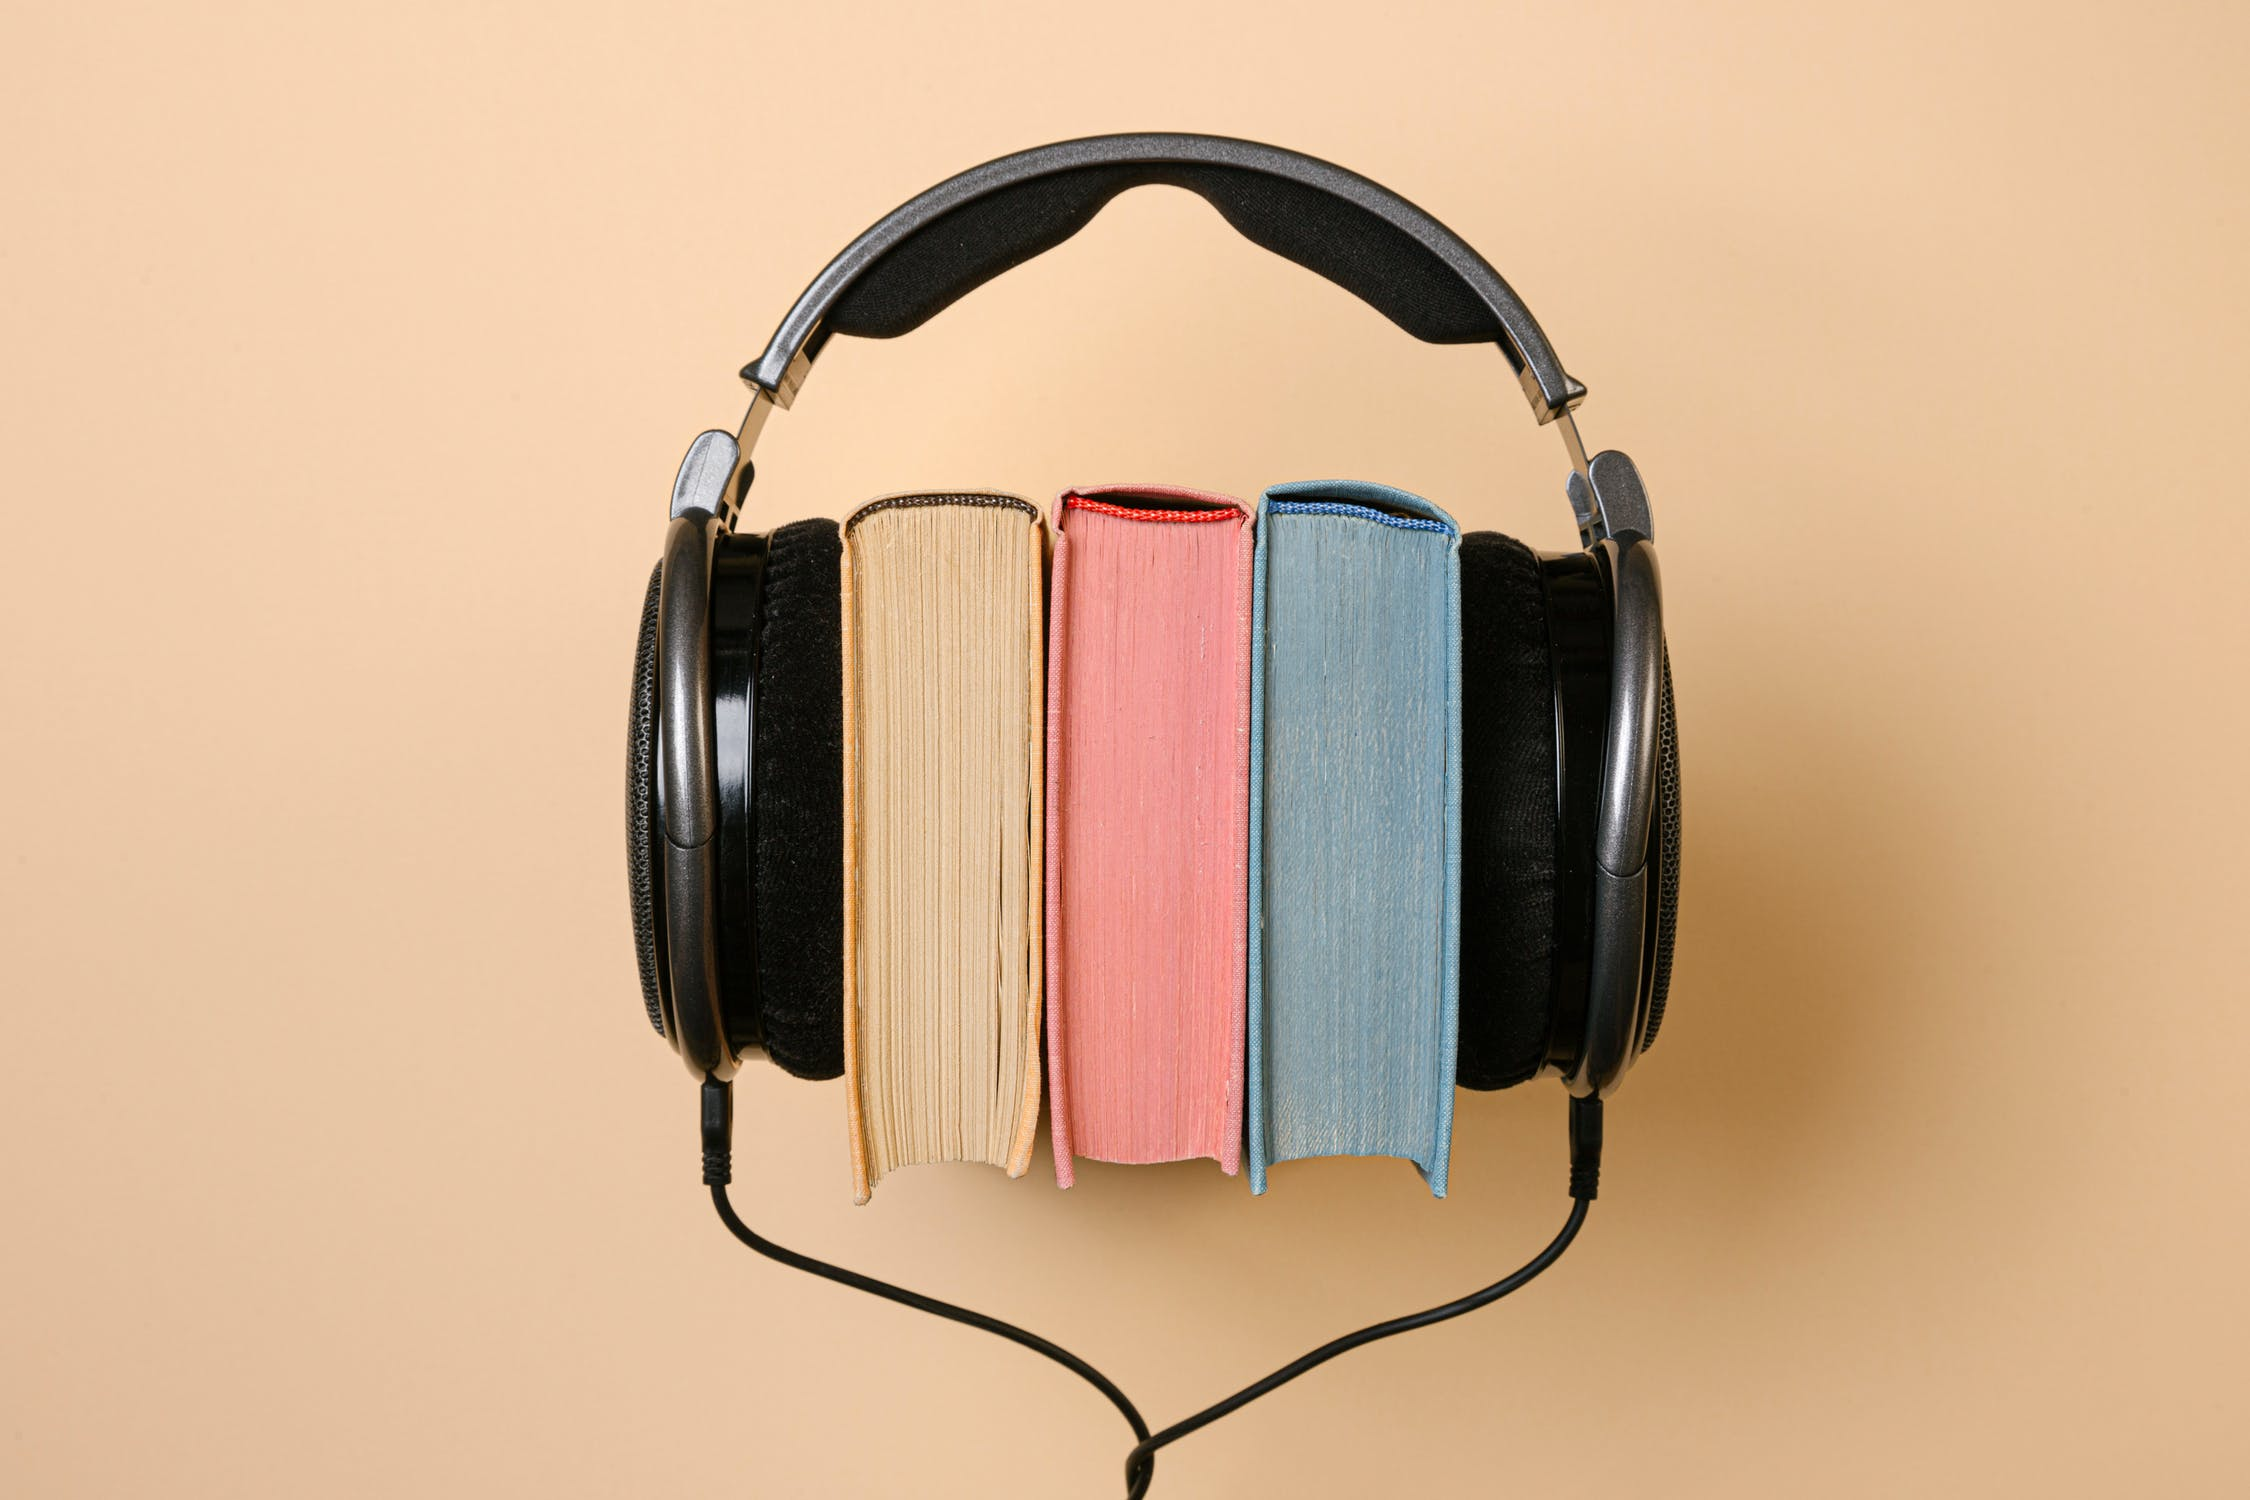 Listening to audiobooks can teach you how to use your voice in business meetings.